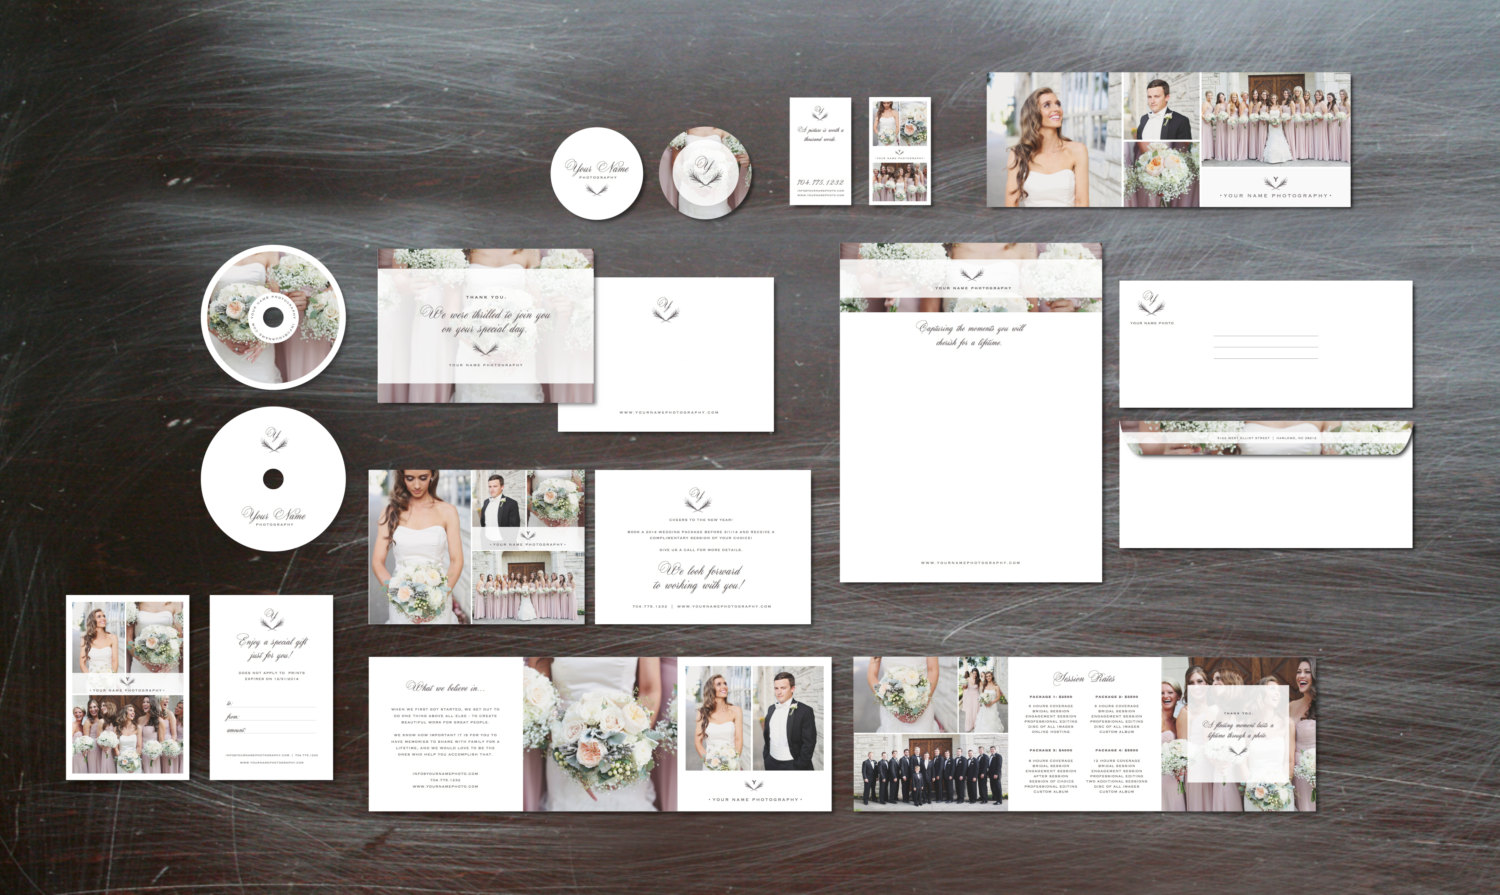 Free Photography Template | Pricing Guide Trifold